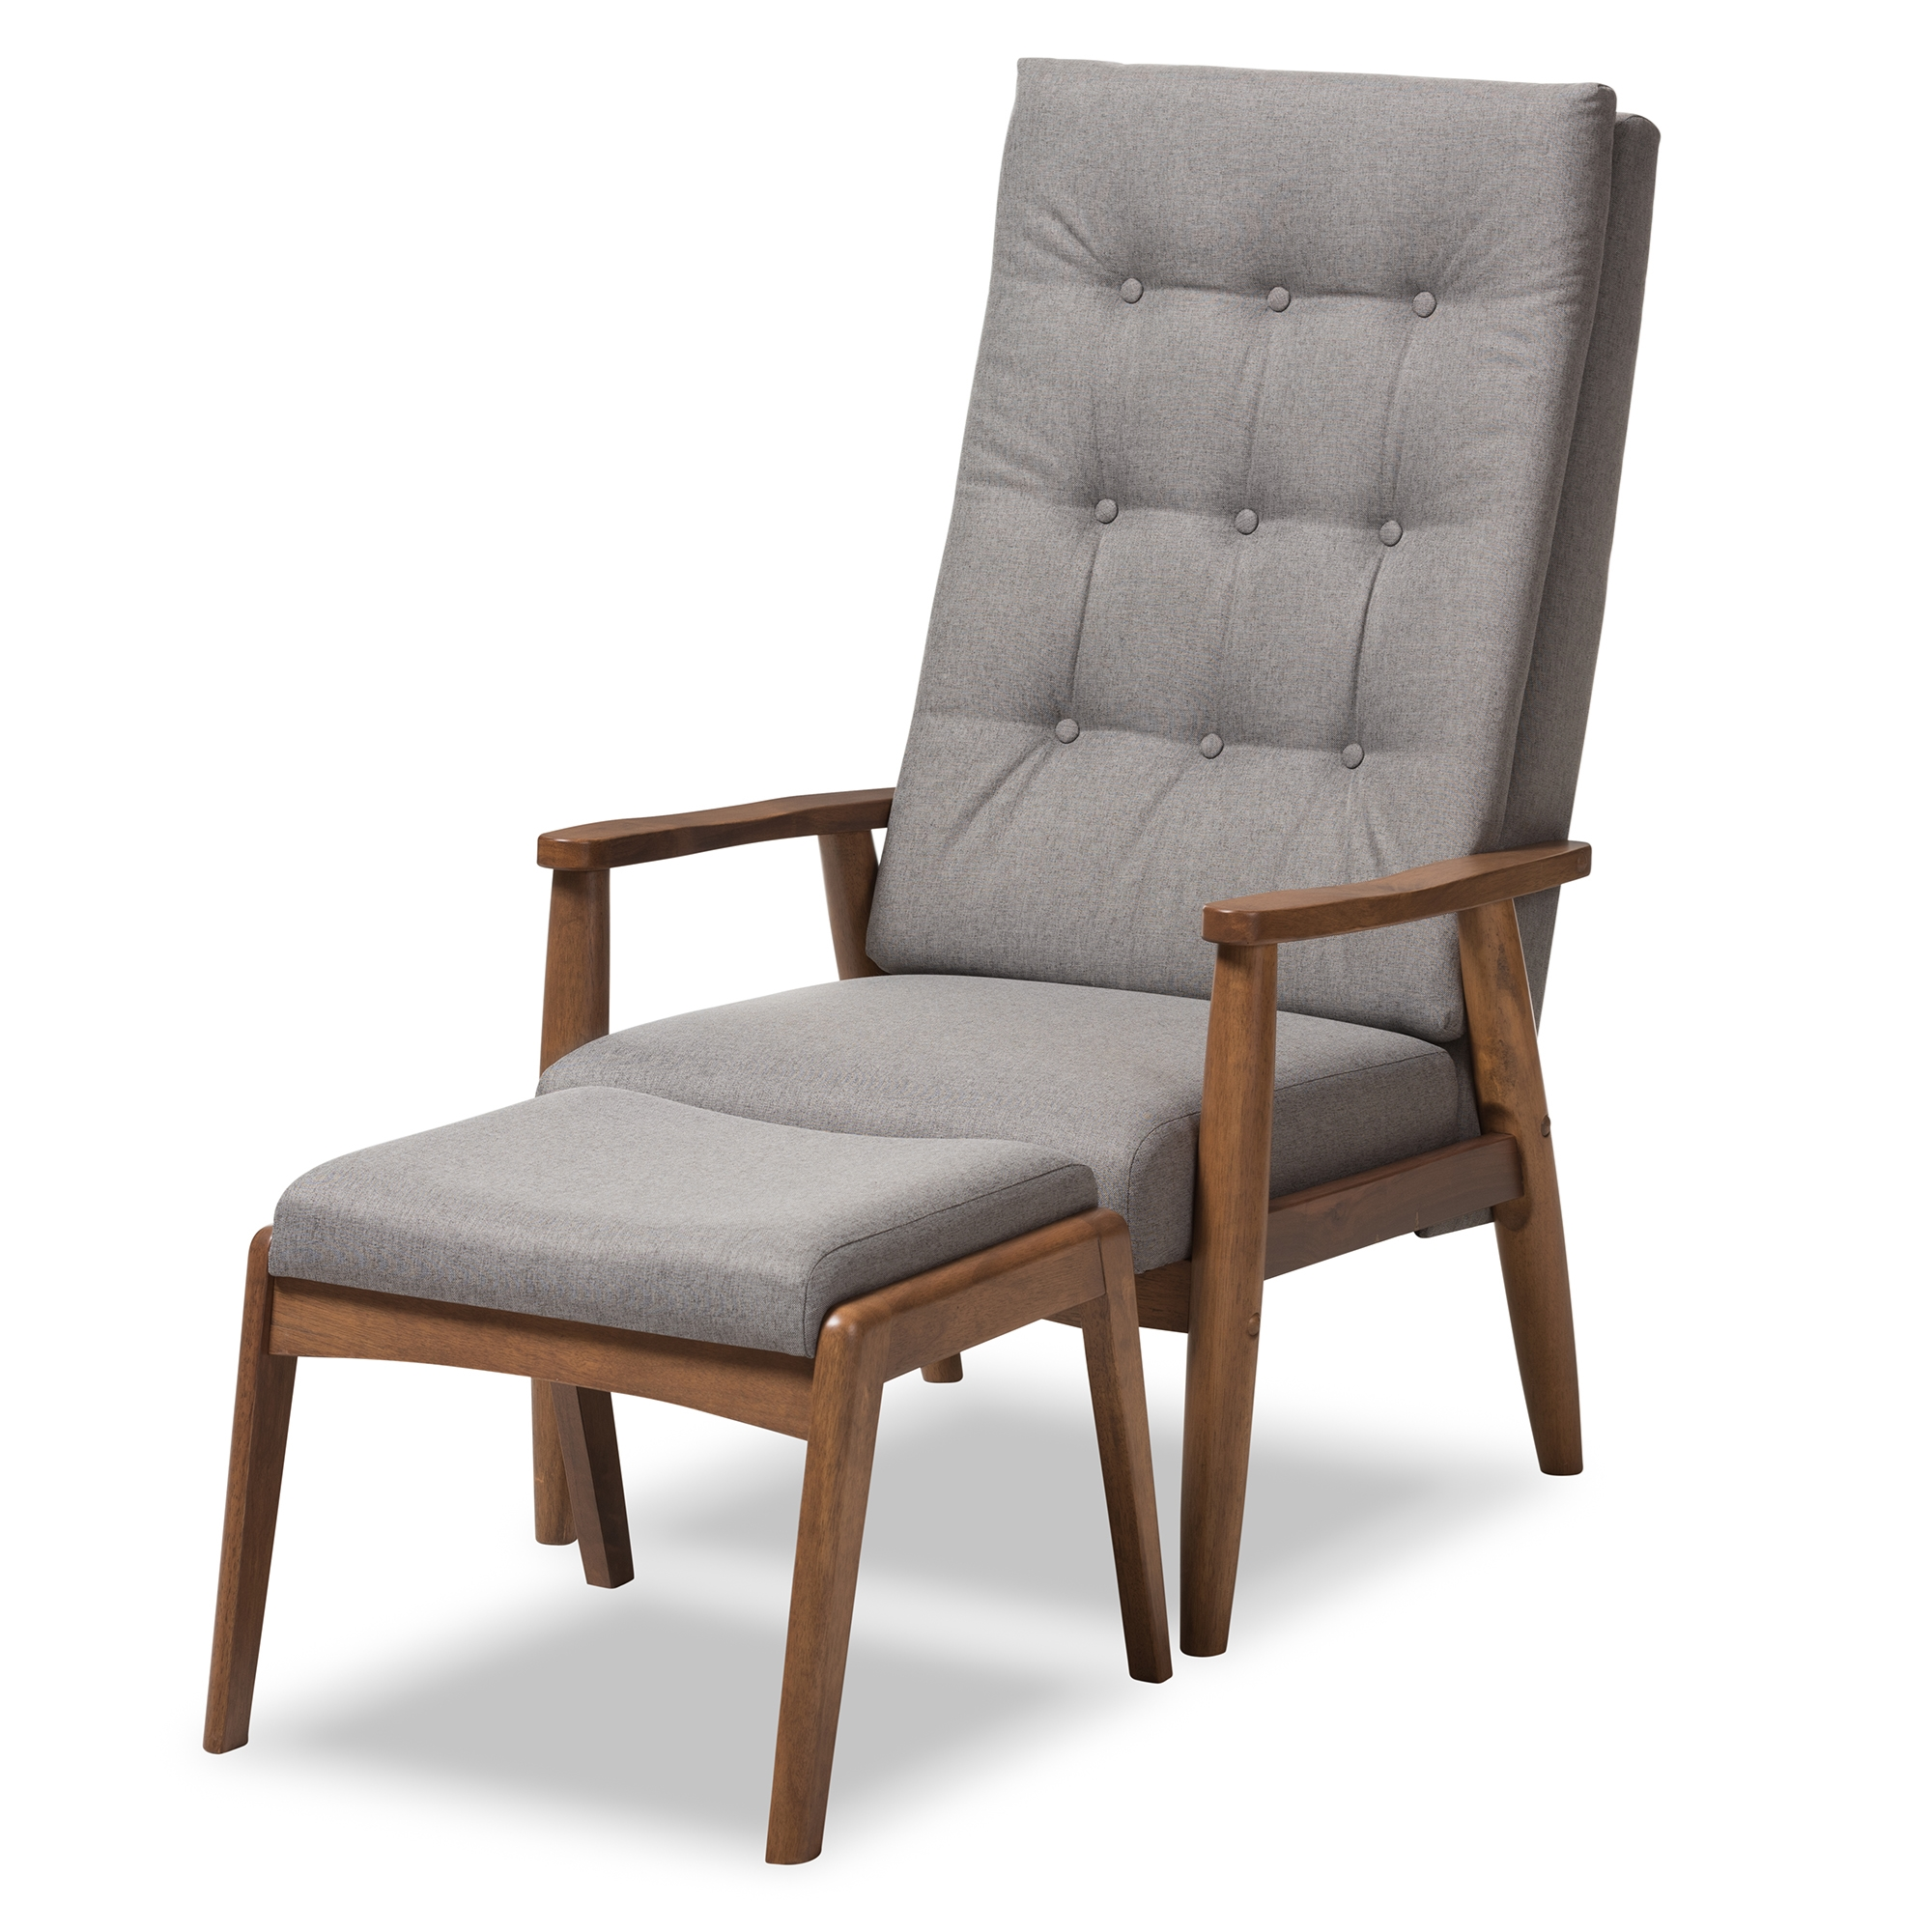 Baxton Studio Roxy Mid Century Modern Walnut Wood Finishing And Grey Fabric  Upholstered Button Tufted High Back Lounge Chair And Ottoman Set